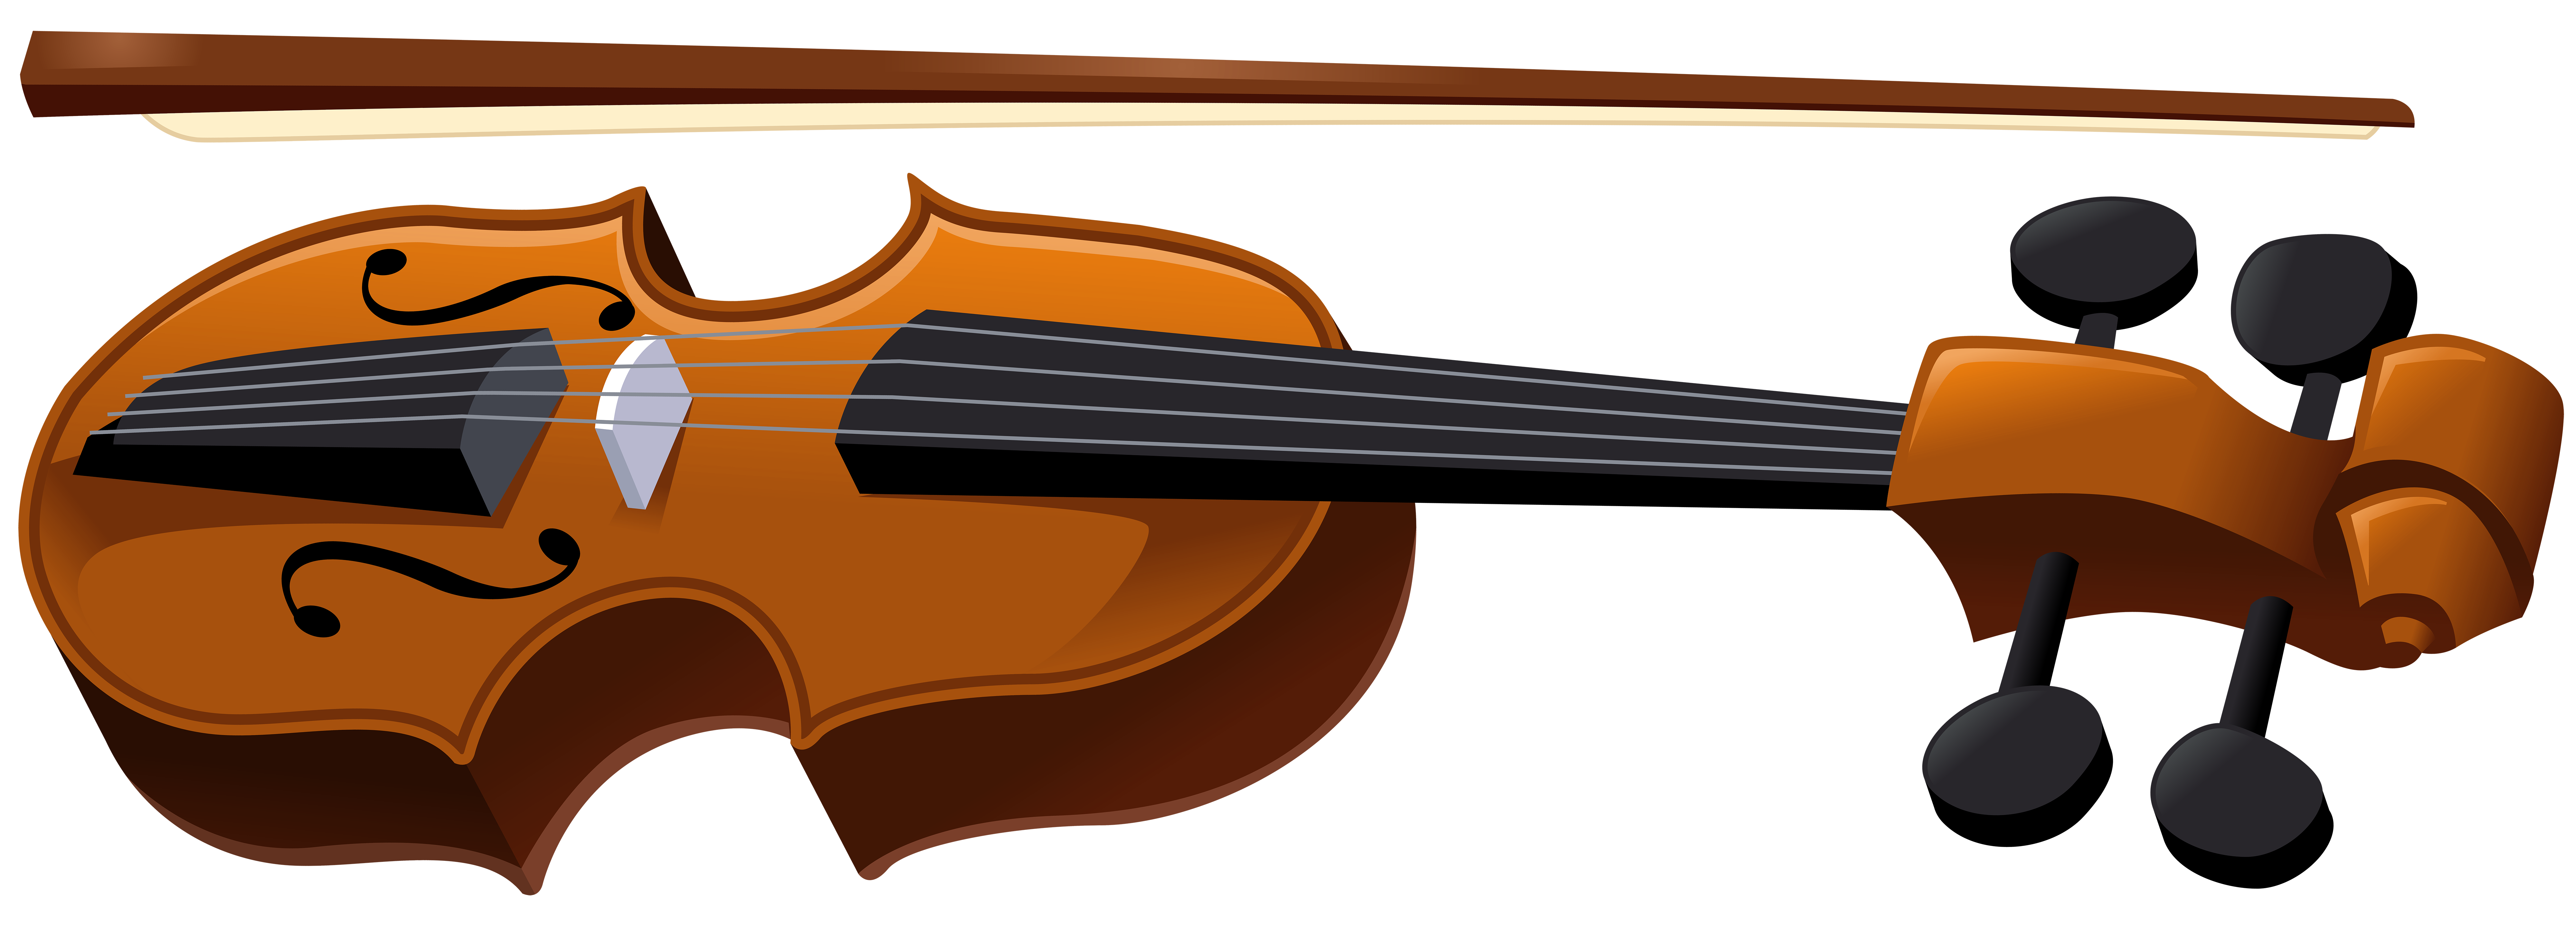 Transparent image gallery yopriceville. Clipart guitar violin